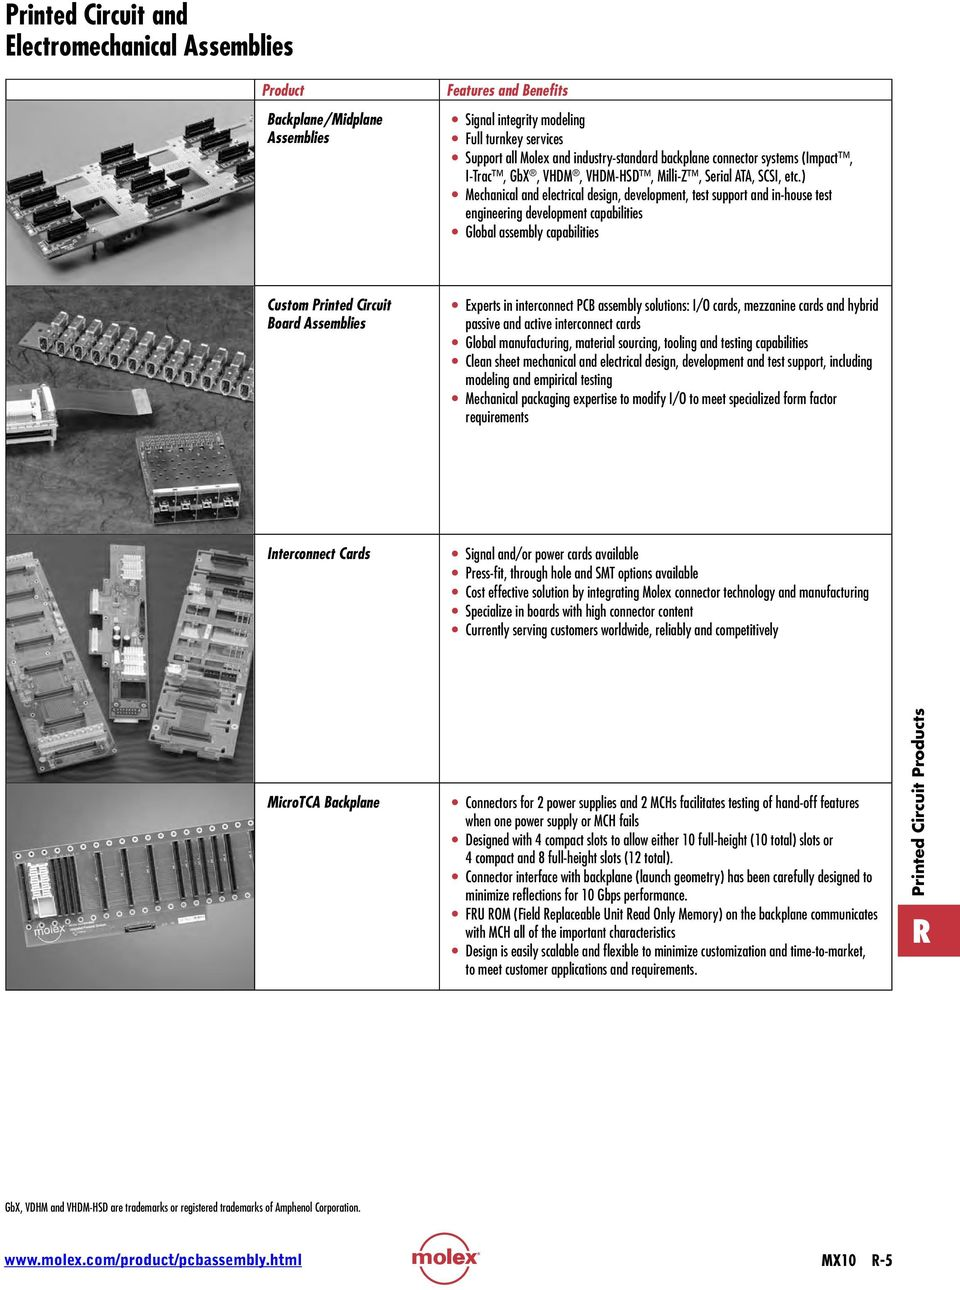 Printed Circuit Products - PDF